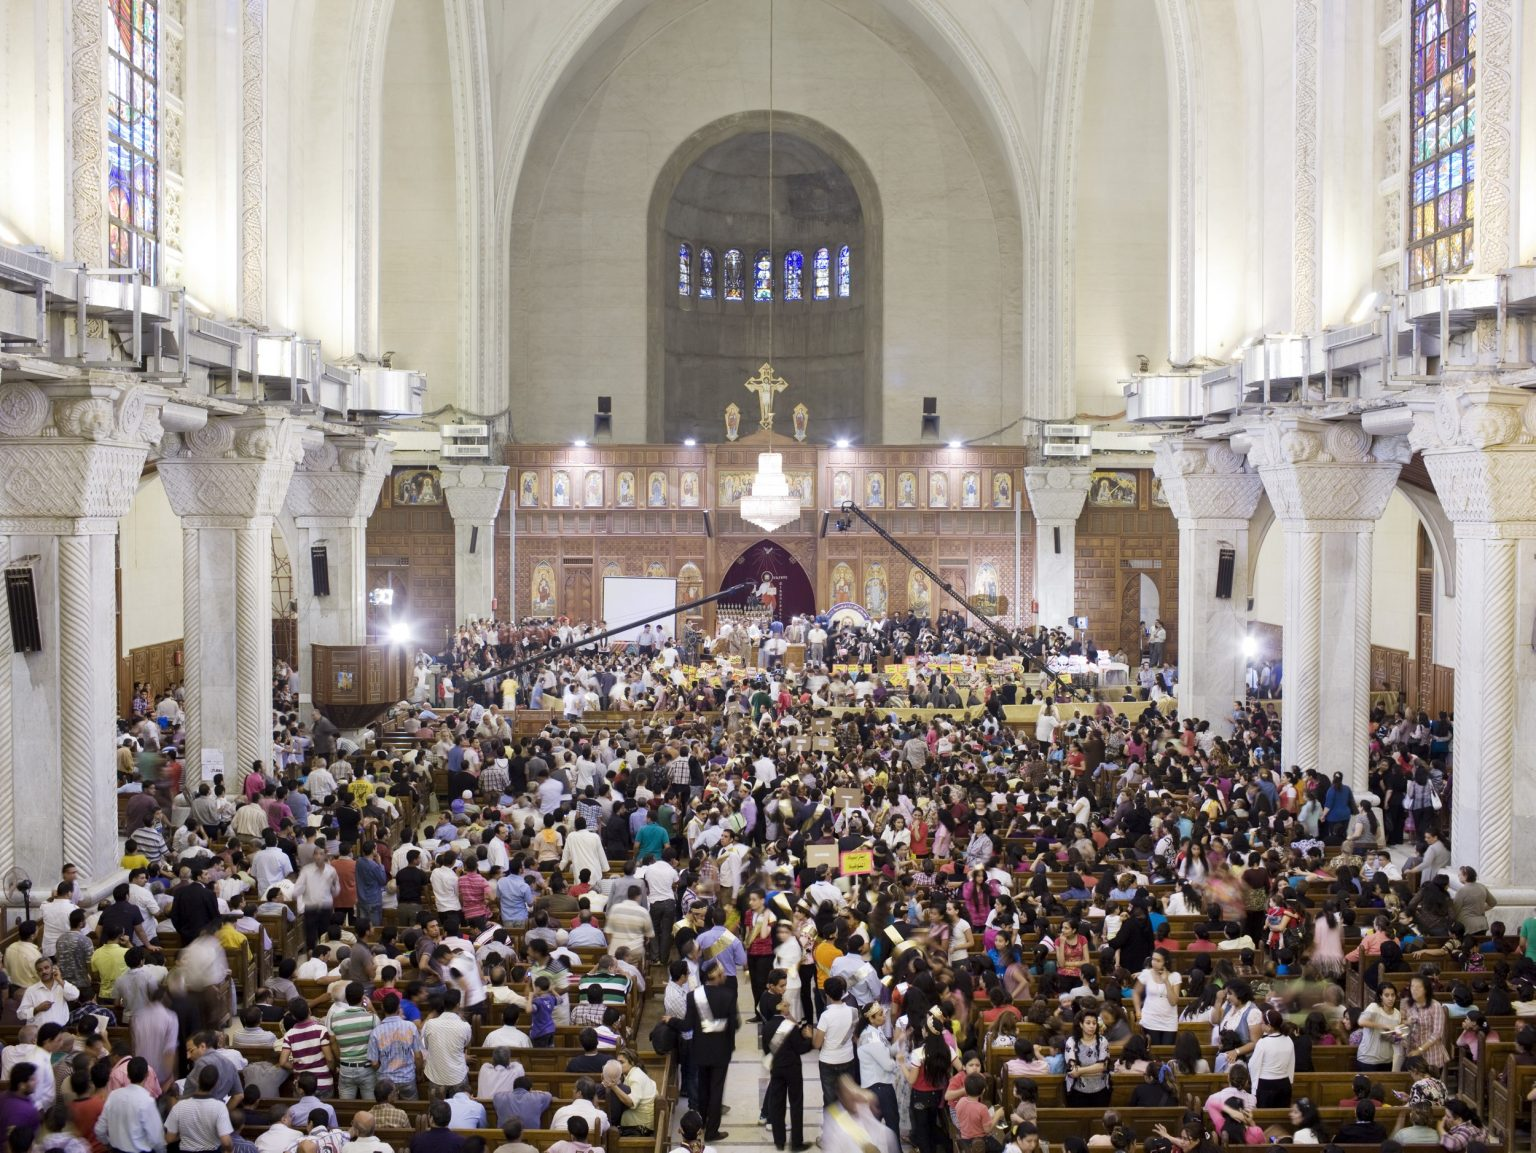 Mass celebration in the Coptic cathedral with the Coptic Pope Shenouda III.